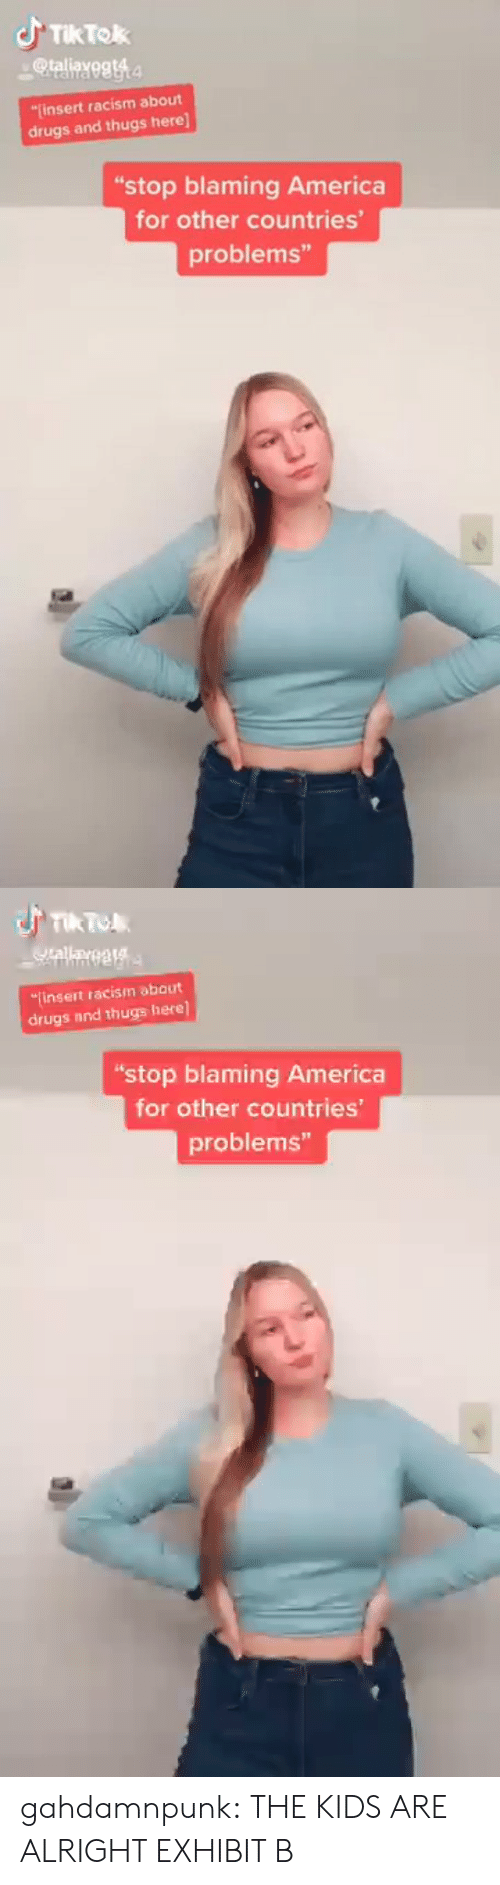 "thugs: JTIKTOK  @taliayegt4  insert racism about  drugs and thugs here]  ""stop blaming America  for other countries'  problems""   TIk To  Qrallayegta  finsert racism about  drugs and thugs here]  ""stop blaming America  for other countries  problems"" gahdamnpunk:  THE KIDS ARE ALRIGHT EXHIBIT B"